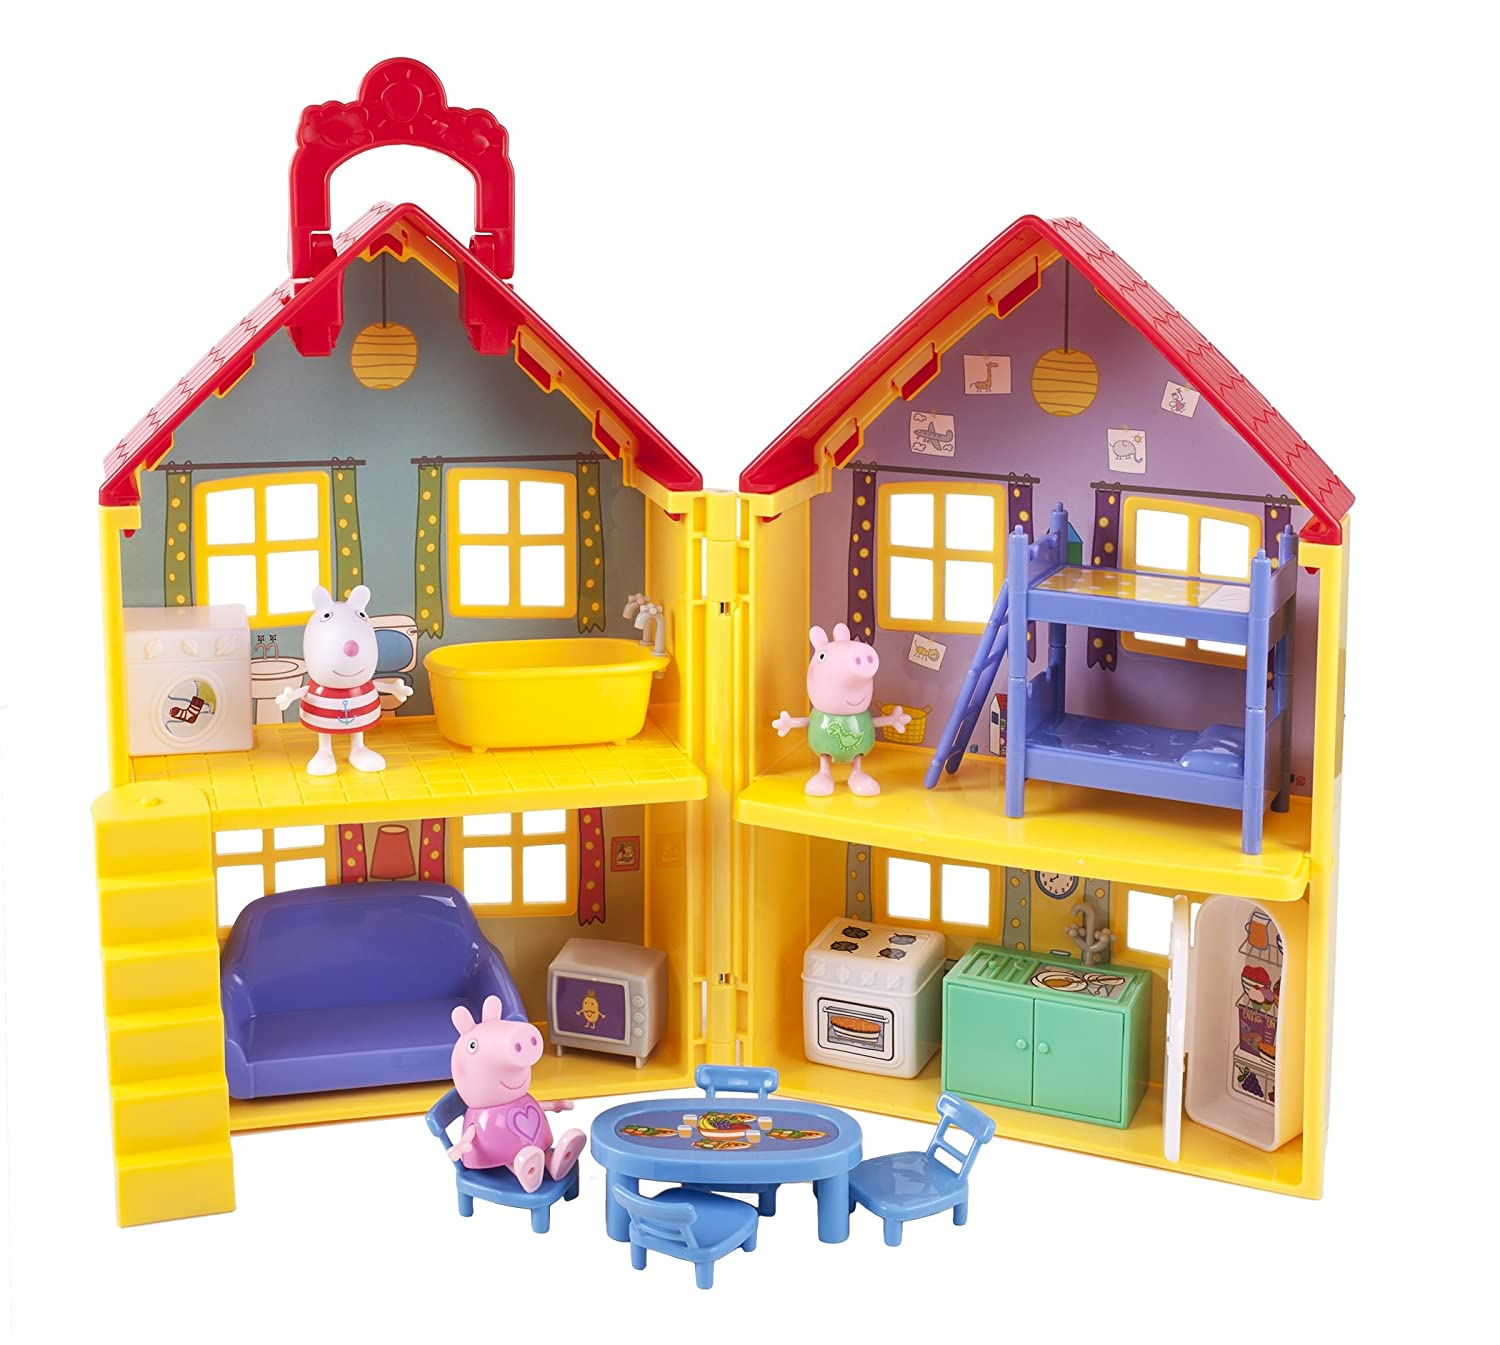 Amazon Peppa Pig s Deluxe House Toys & Games